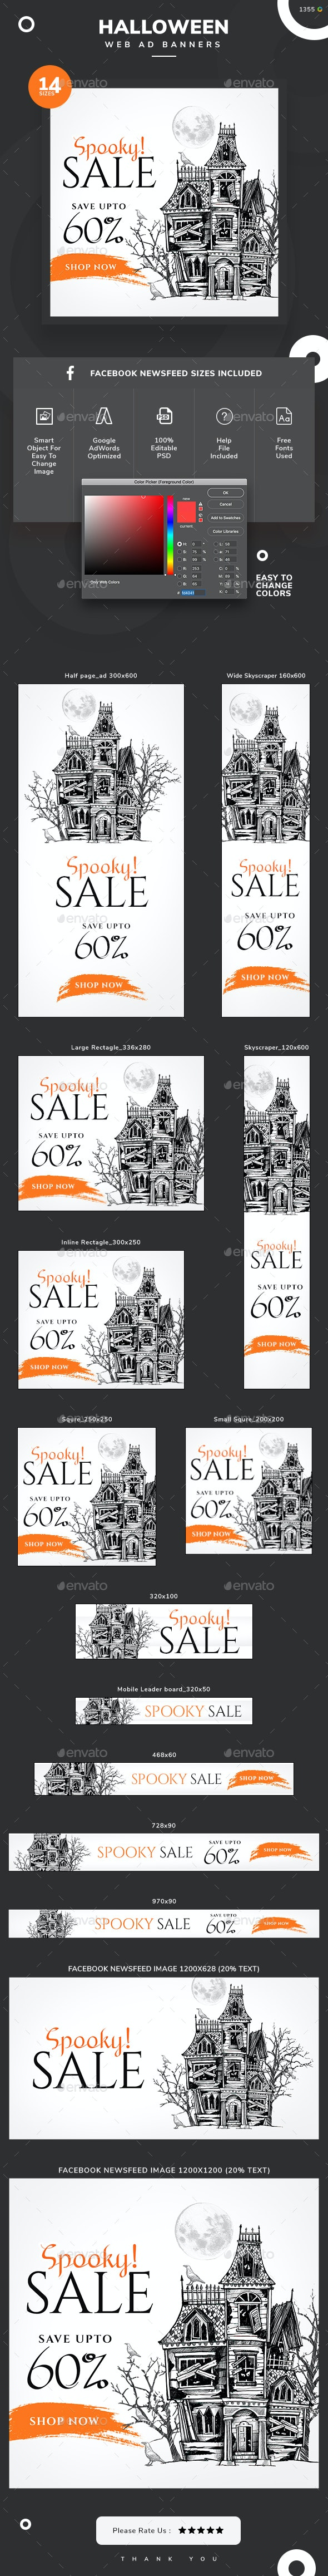 Halloween Sale, Web Banner Set - Banners & Ads Web Elements